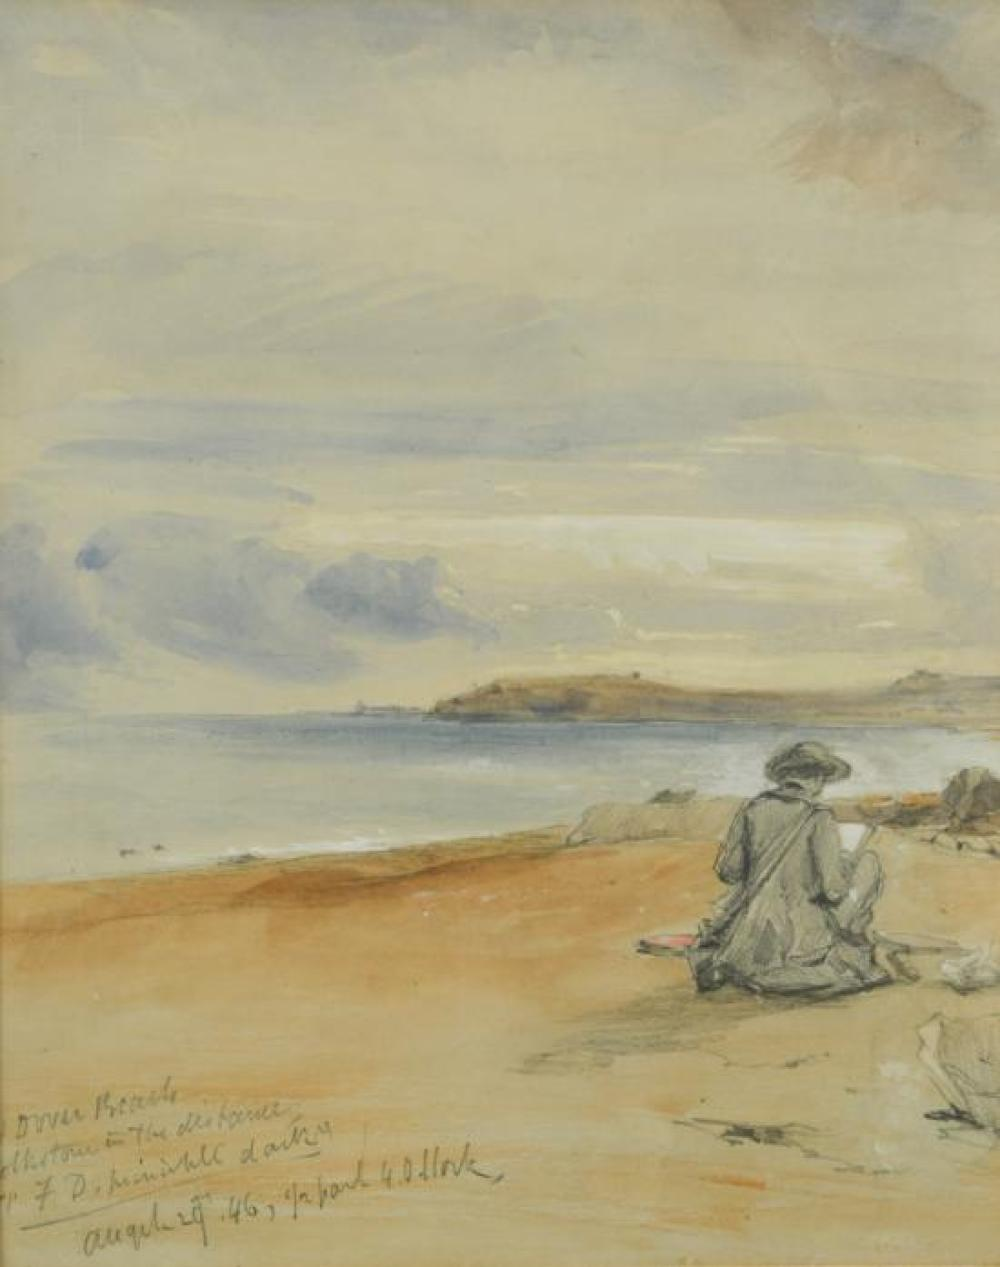 William Callow, RWS, FRGS (British, 1812-1908) Self-portrait of the artist, sketching on Dover Beach on his honeymoon, 1846 inscribe...